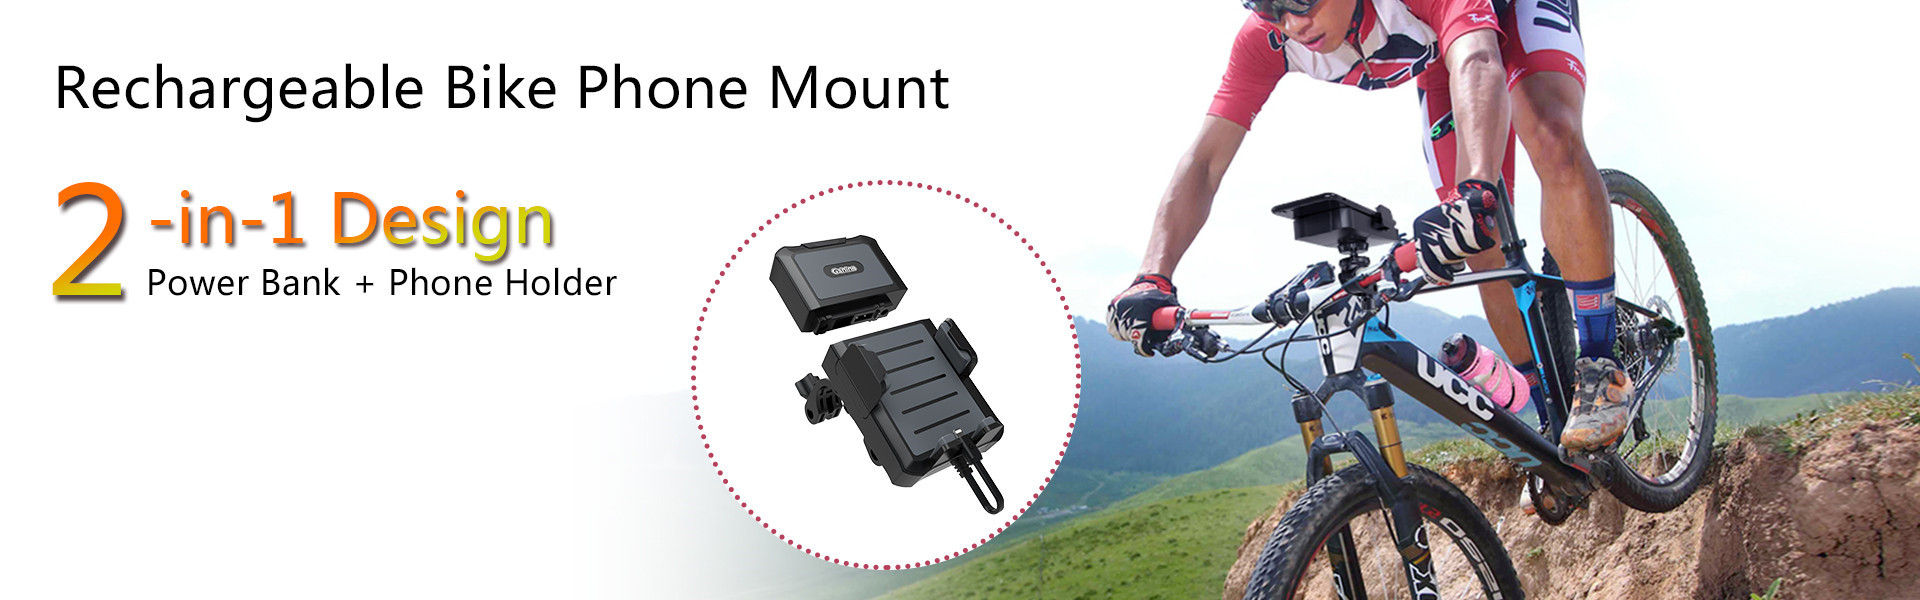 Rechargeable bike mount phone holder